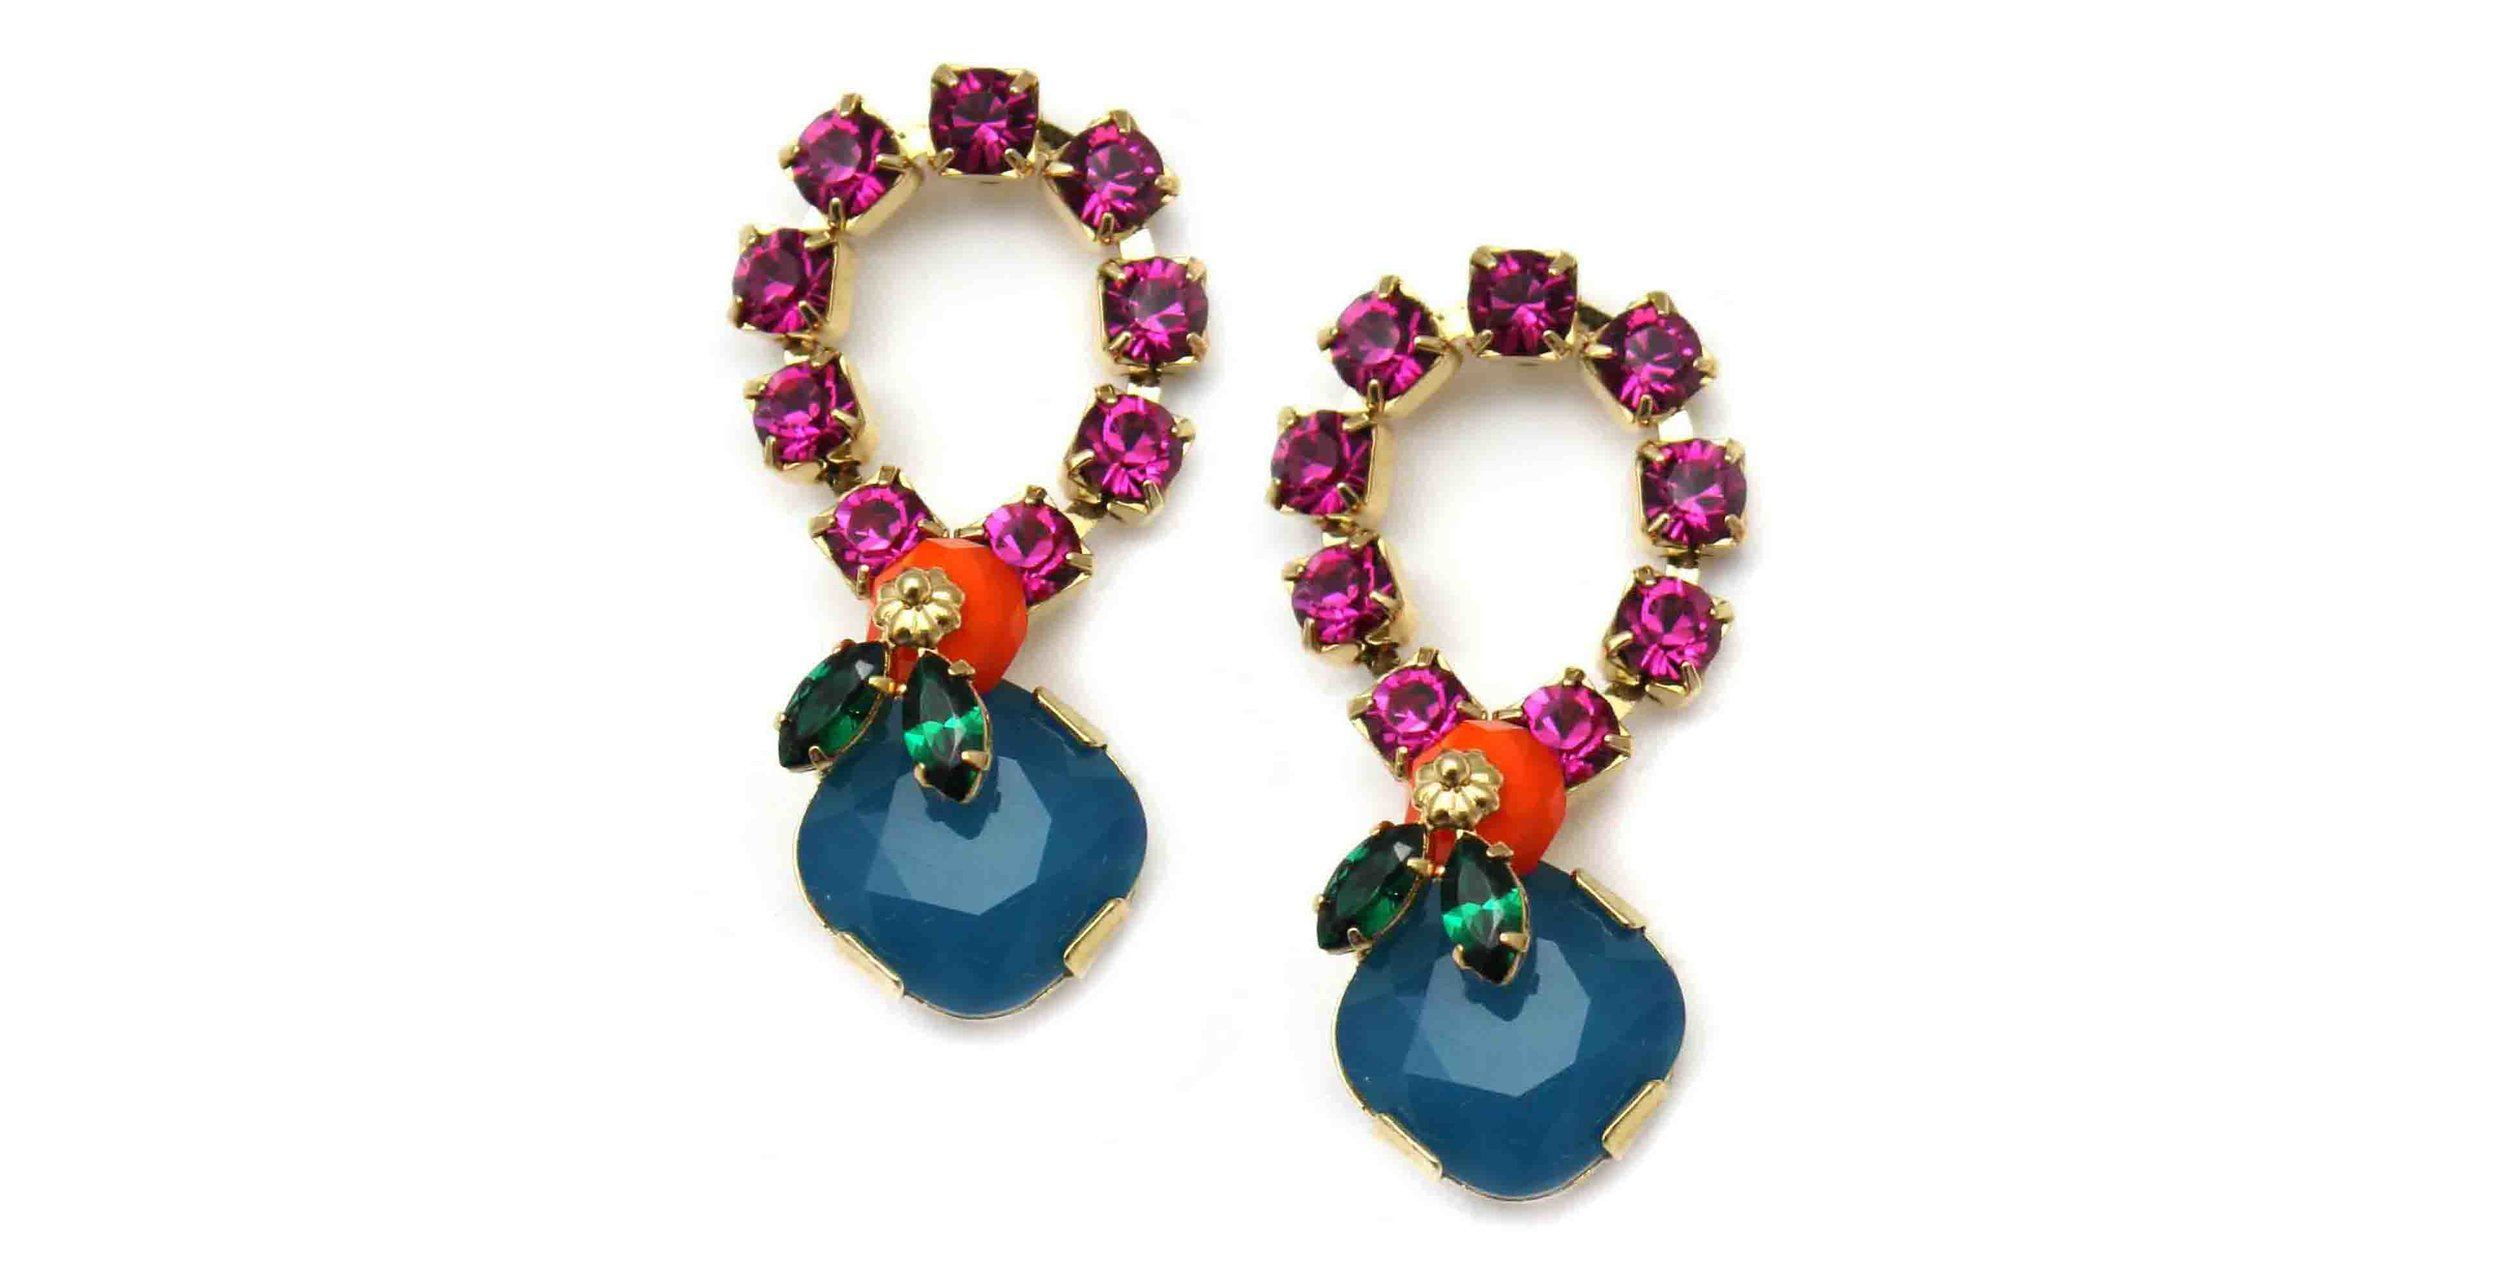 165PB Botanical Loop Earrings - PinkBlue.jpg